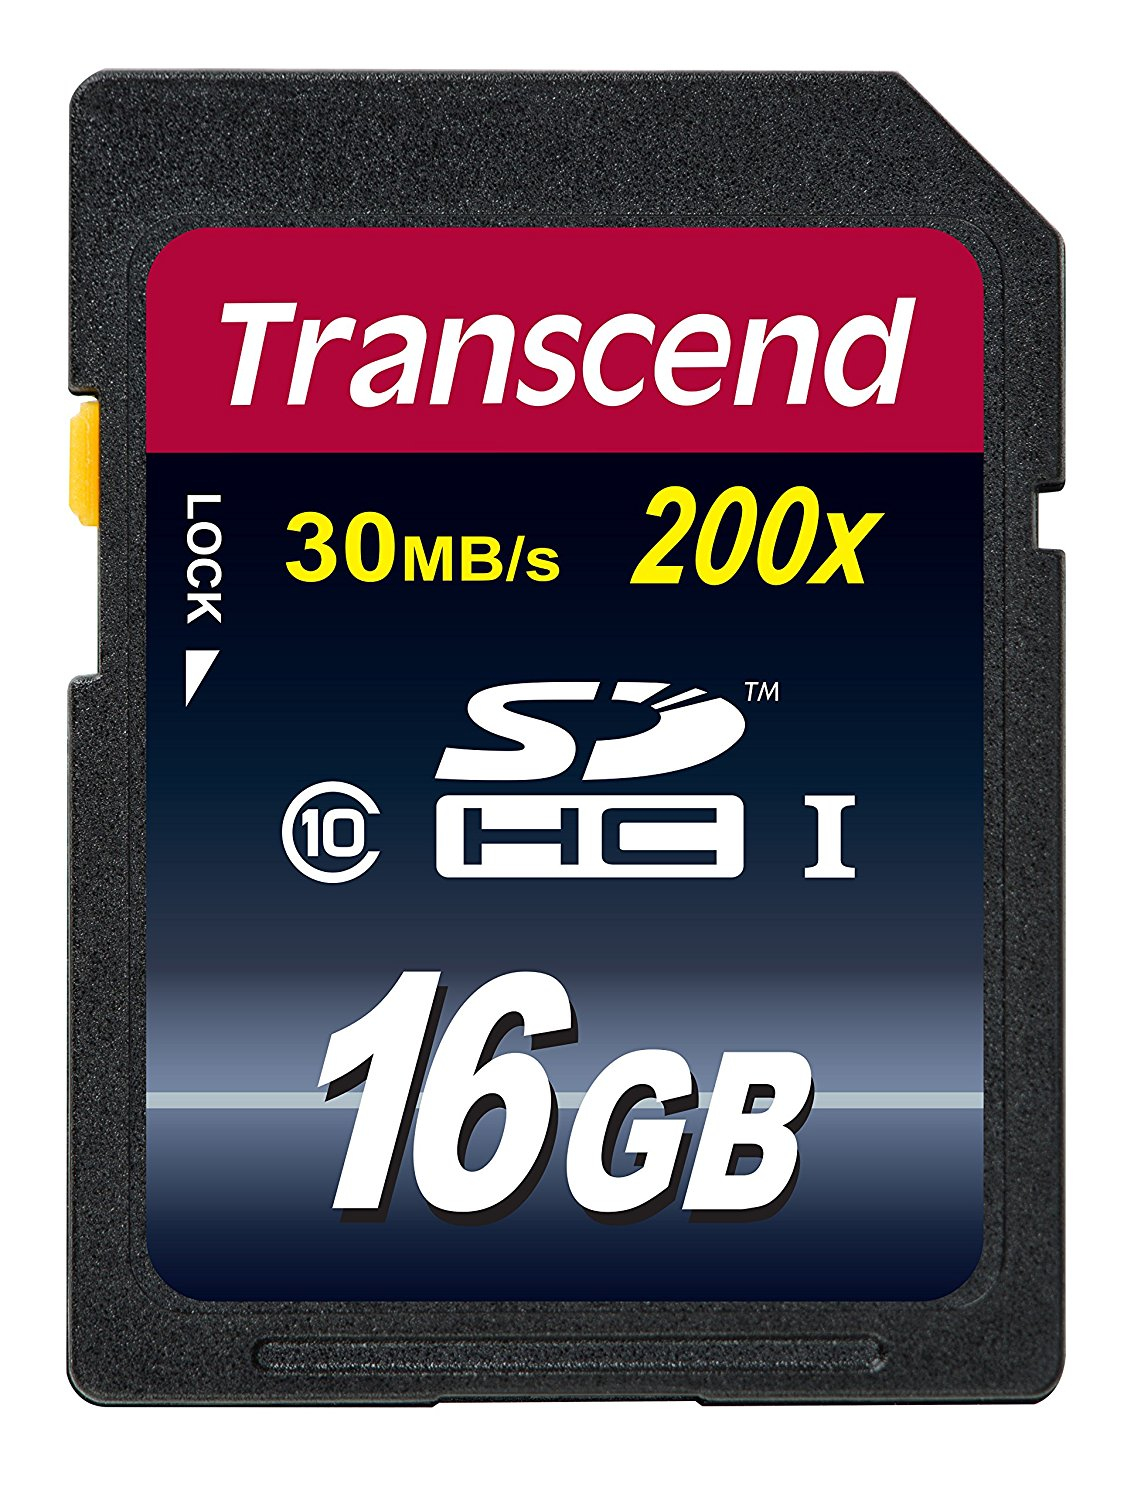 Transcend TS16GSDHC10 16GB SDHC UHS-I Class 10 memory card